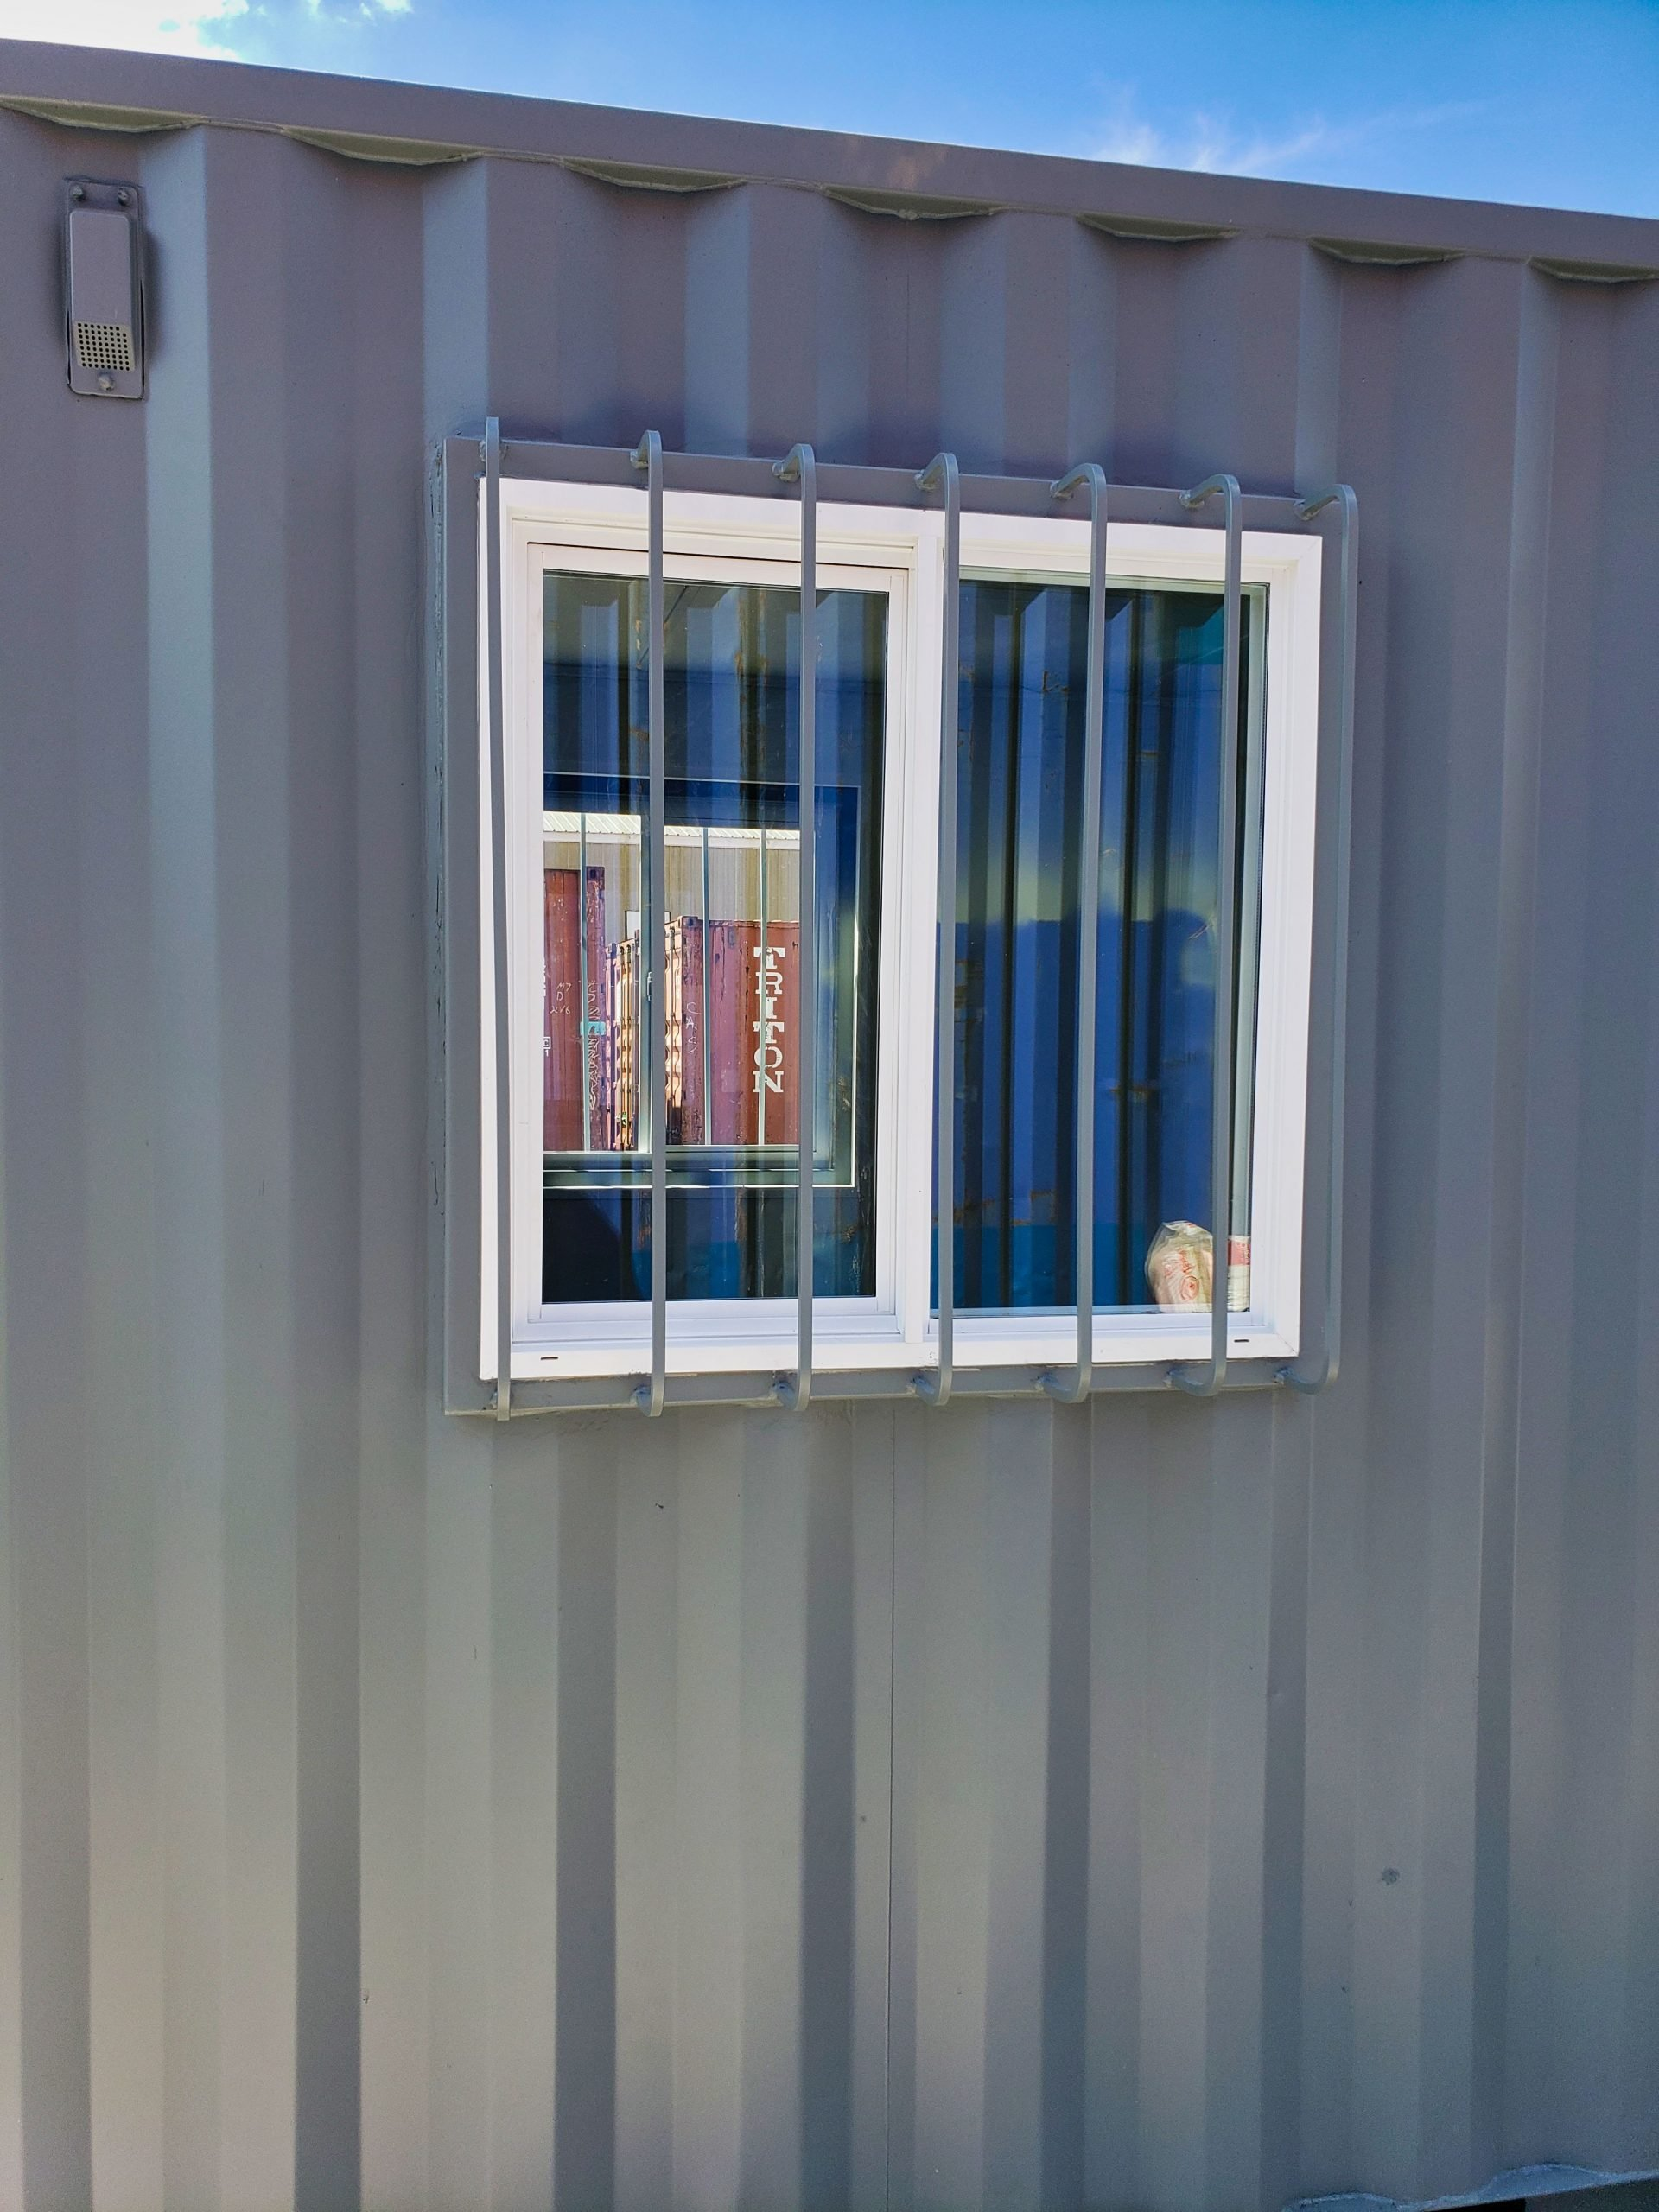 "A American Container's 35"" x 35"" window with bars"